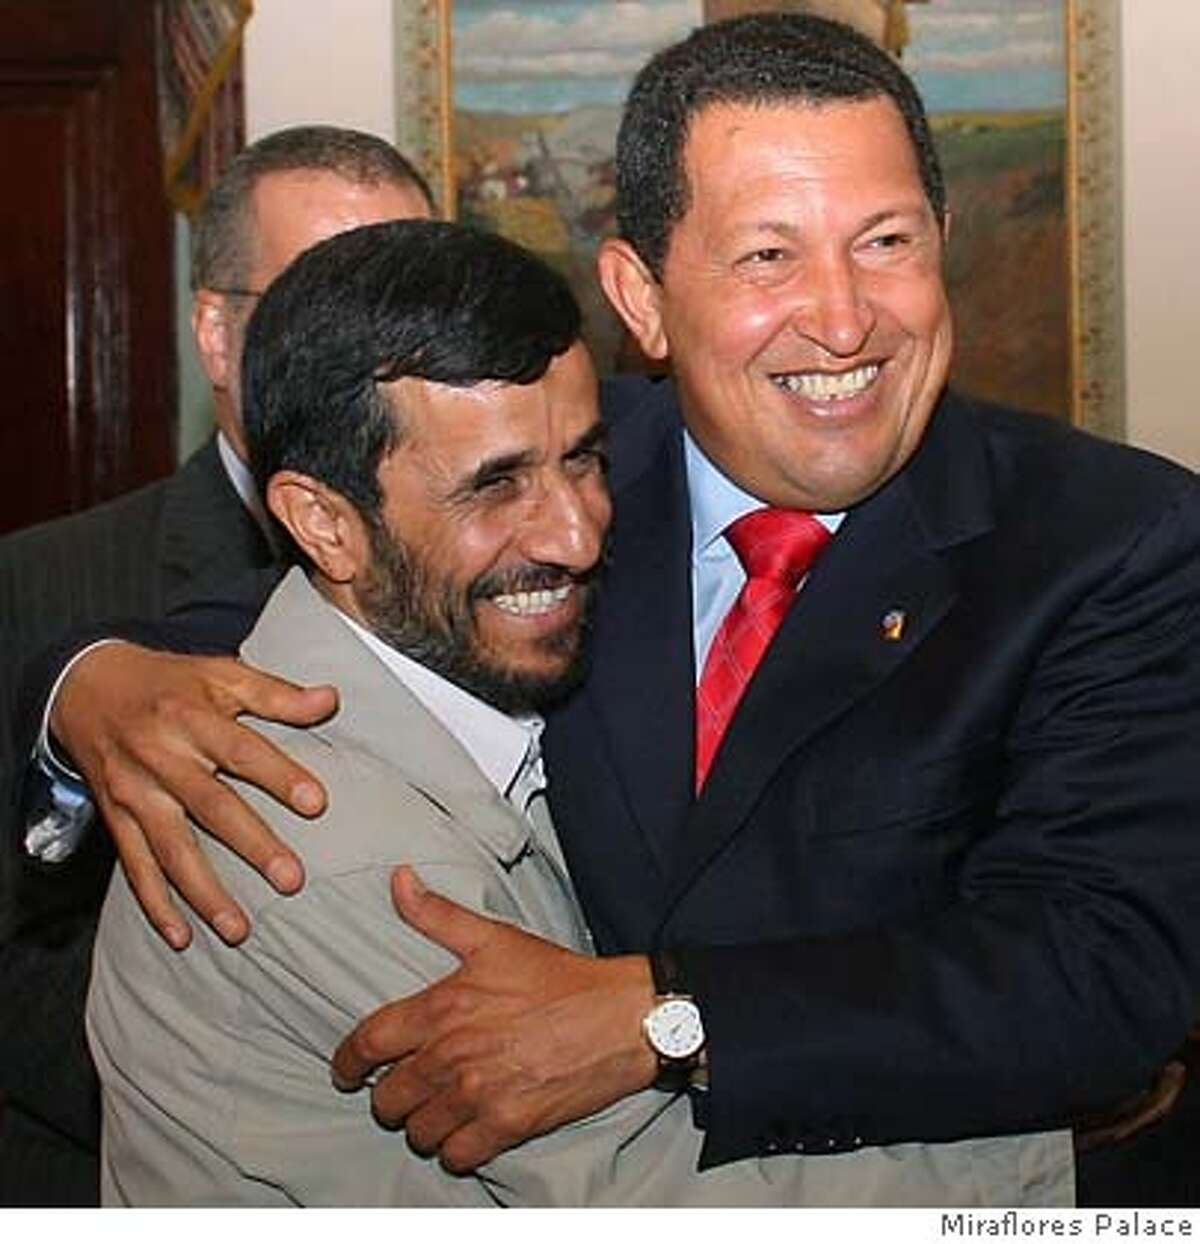 Iran's President Mahmoud Ahmadinejad (L) is welcomed by Venezuela's President Hugo Chavez at Miraflores Palace in Caracas September 17, 2006. Ahmadinejad shored up opposition to a U.S. drive to curb Iran's nuclear program on a visit to Venezuela on Sunday that cemented an anti-American front with Chavez. EDITORIAL USE ONLY REUTERS/Miraflores Palace/Handout (VENEZUELA) 0